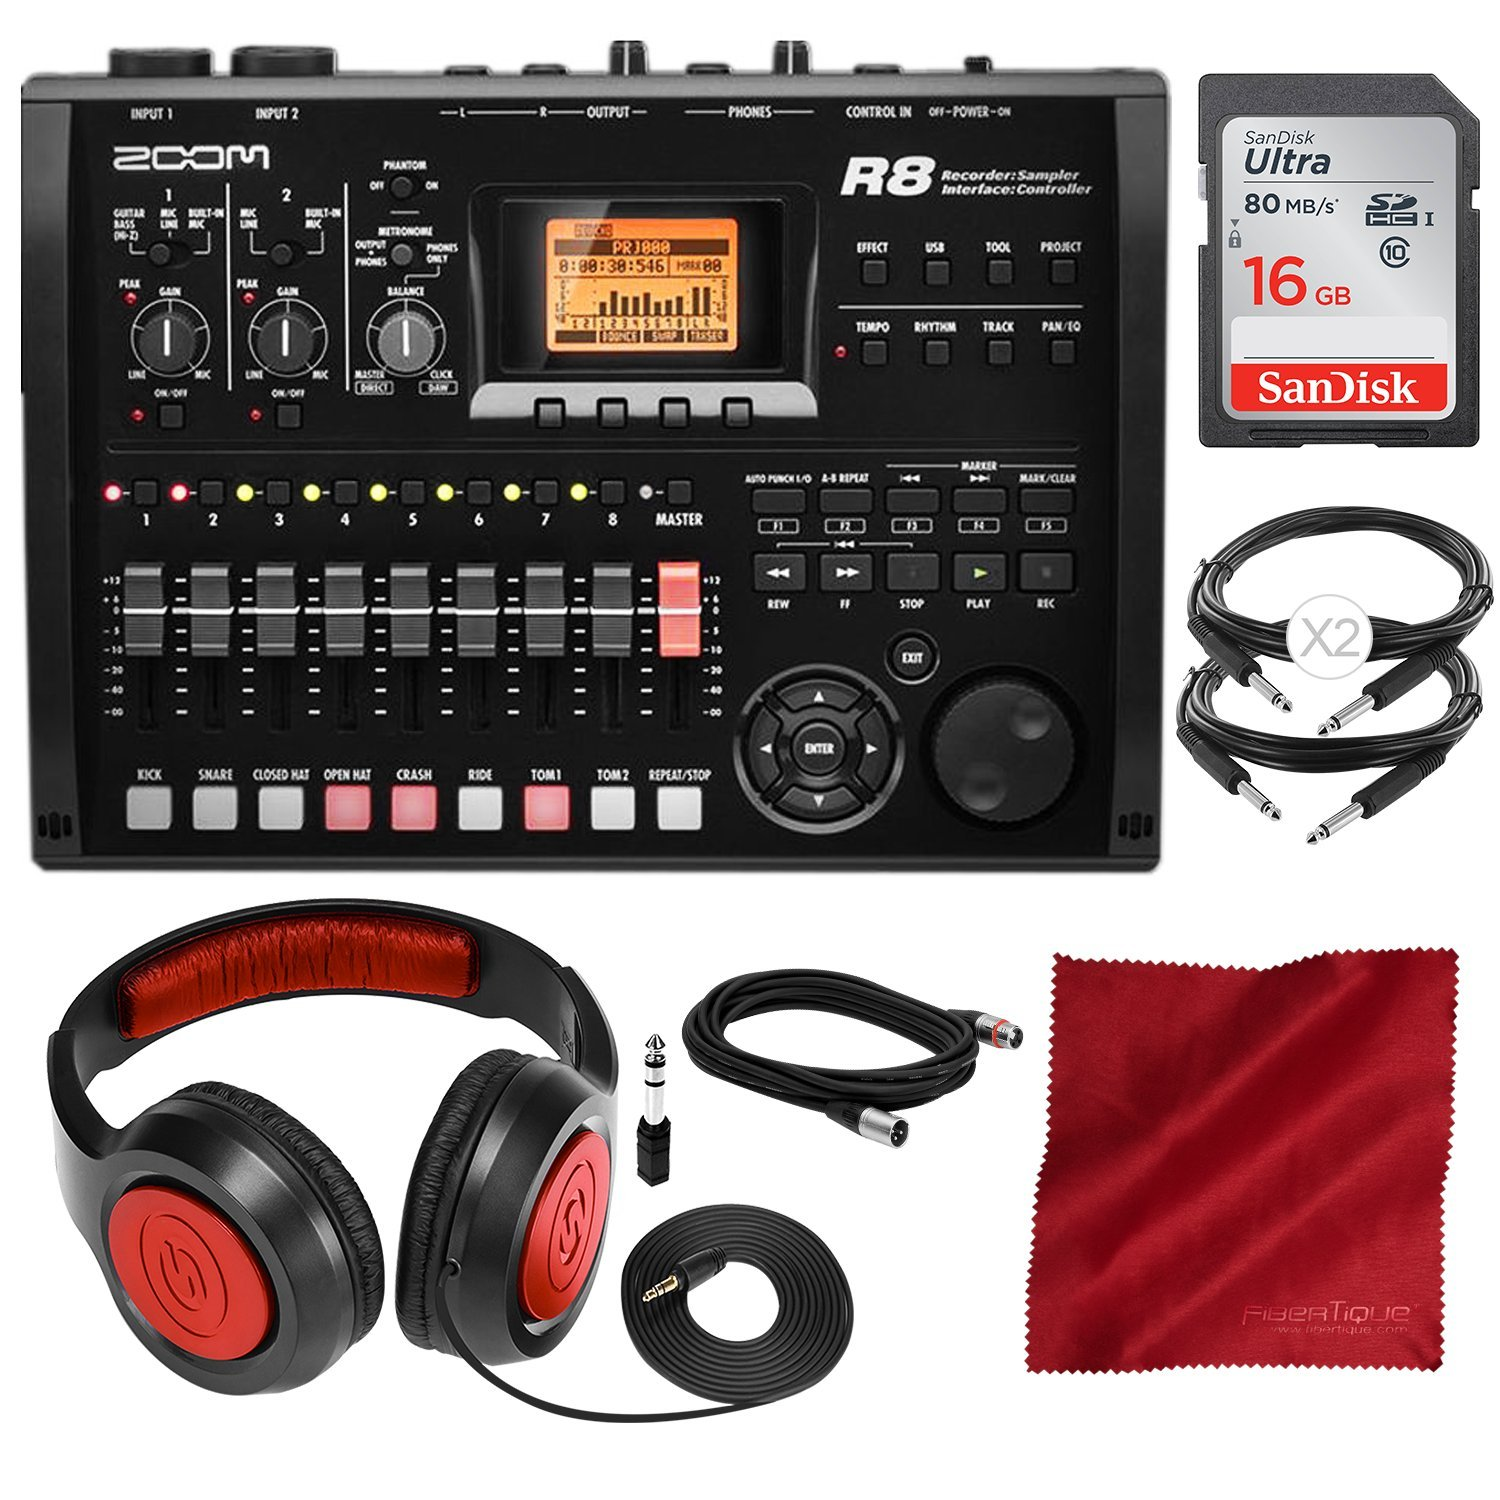 Zoom R8 Multi-Track Digital Recorder/Interface/Controller/Sampler with 16GB SD Card, Samson Headphones, and Accessory Bundle Photo Savings